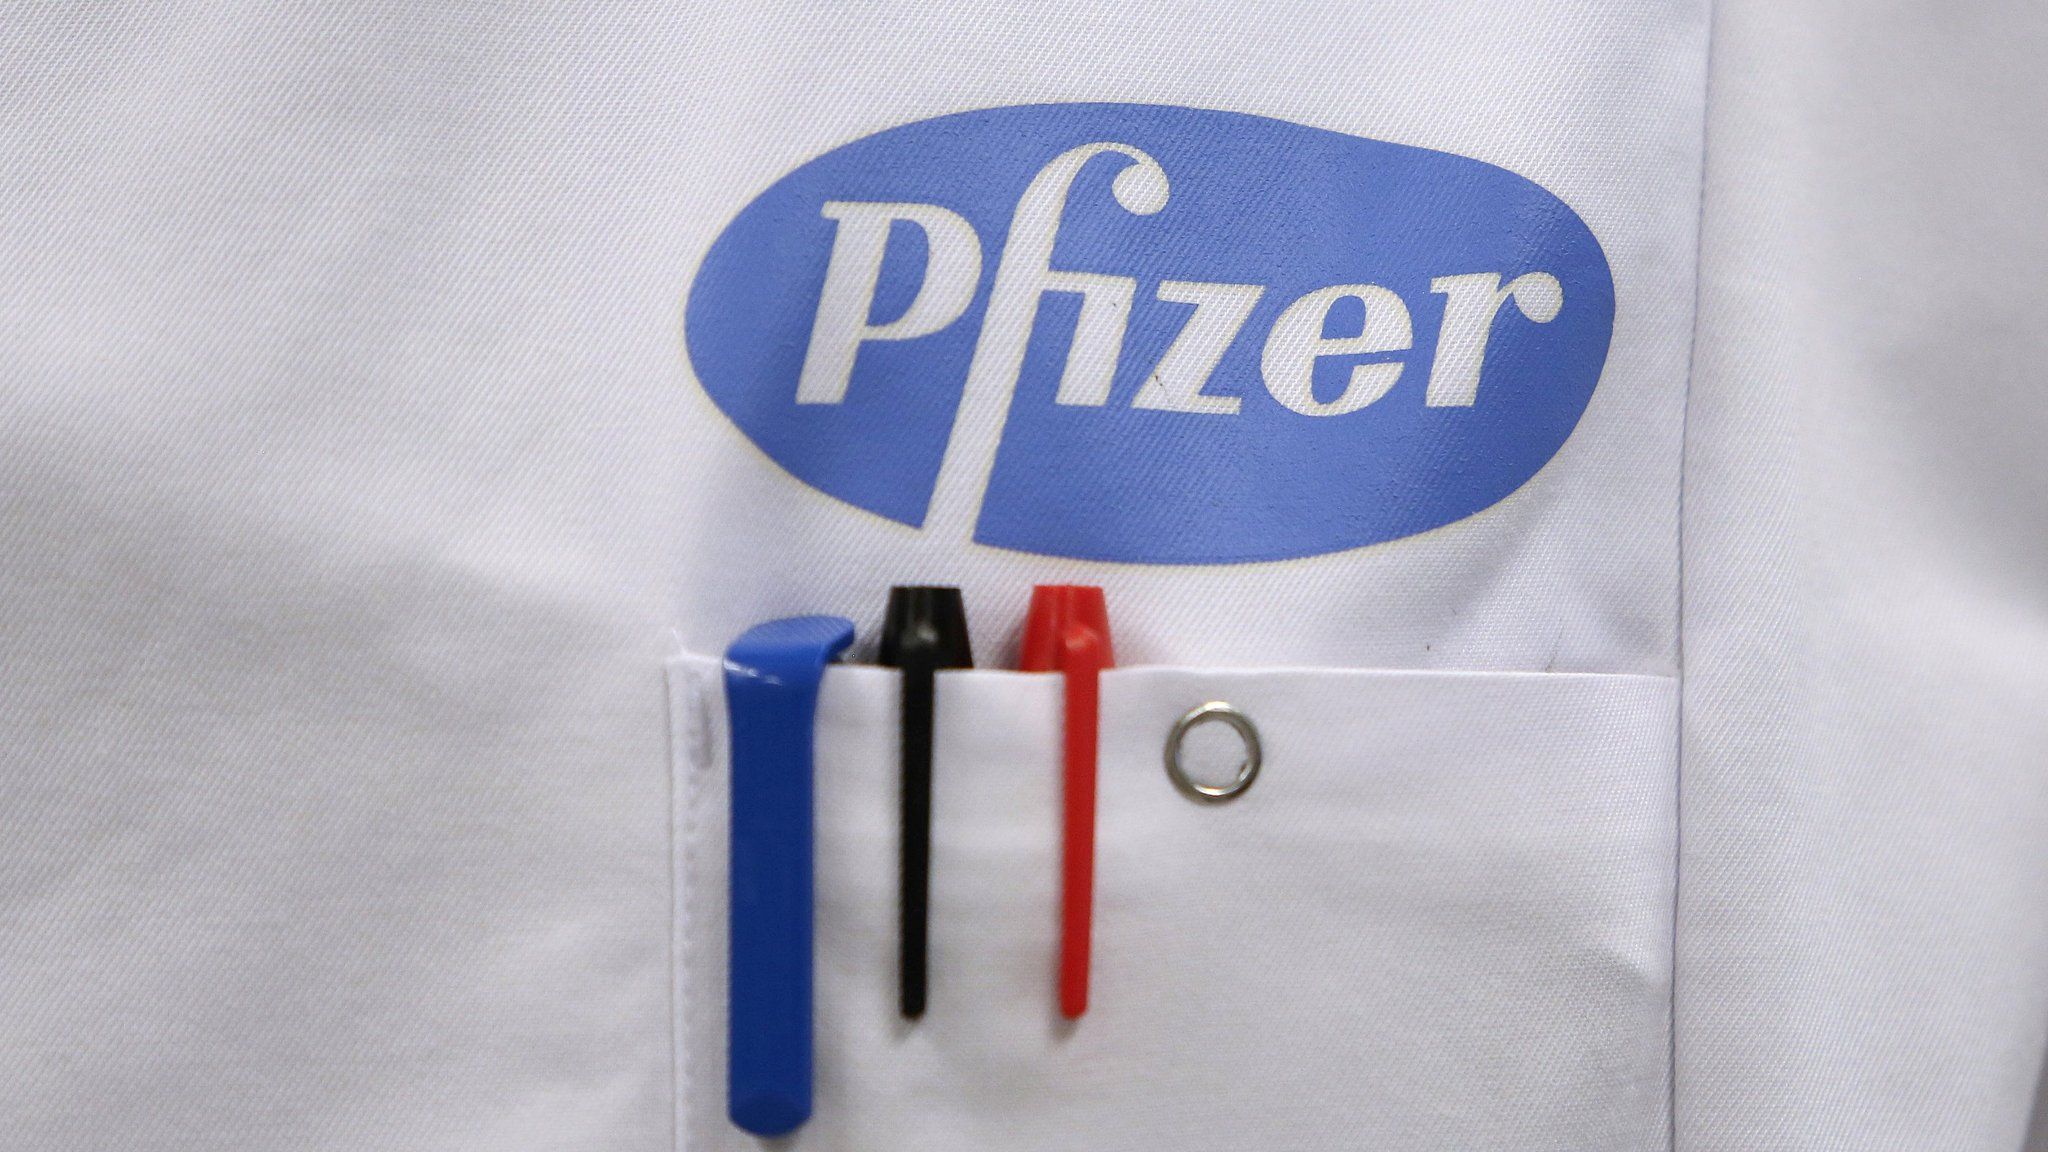 Pfizer to boost cancer treatment portfolio with $11 4bn